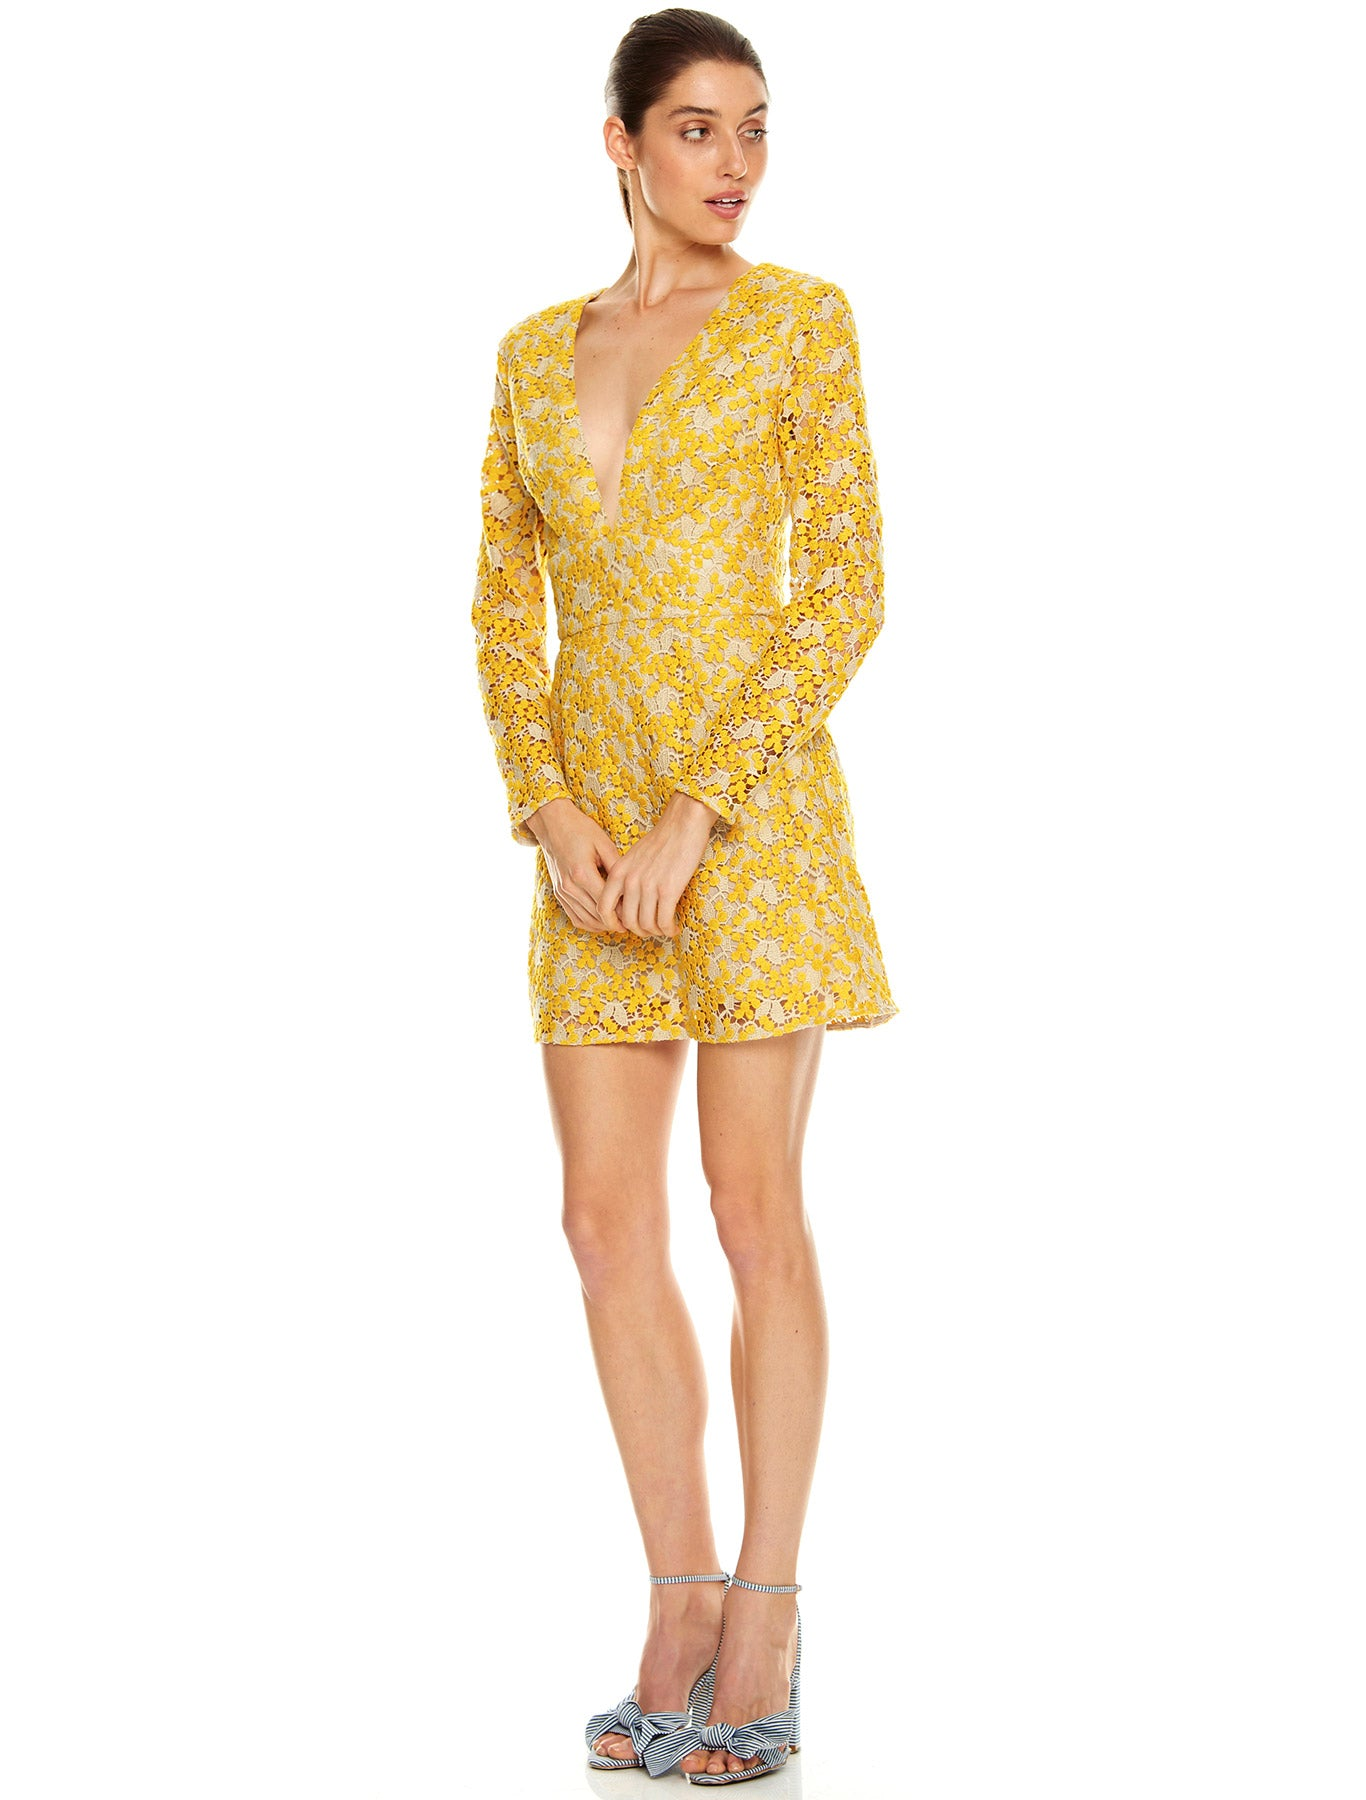 SUN DREAMS L/S MINI DRESS